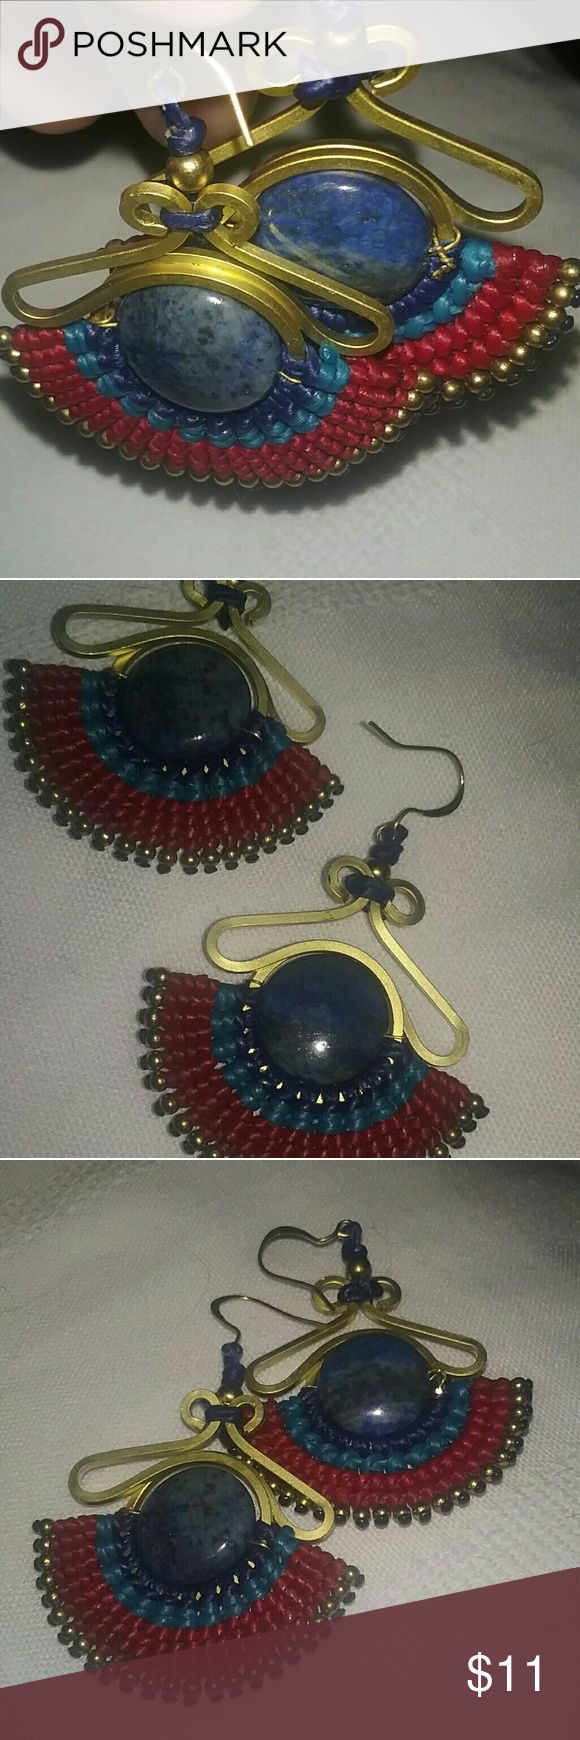 Handcrafted Earrings from Peru This pair of earrings is completely handcrafted by women in Peru under the Fair Trade Act. This means that the sales of the items completely support the local women who make them & their children & is their only means of income. These are beautifully designed & professionally handcrafted by one of these women.  Beautiful blue gemstone,  all hand beaded, one of a kind. Jewelry Earrings